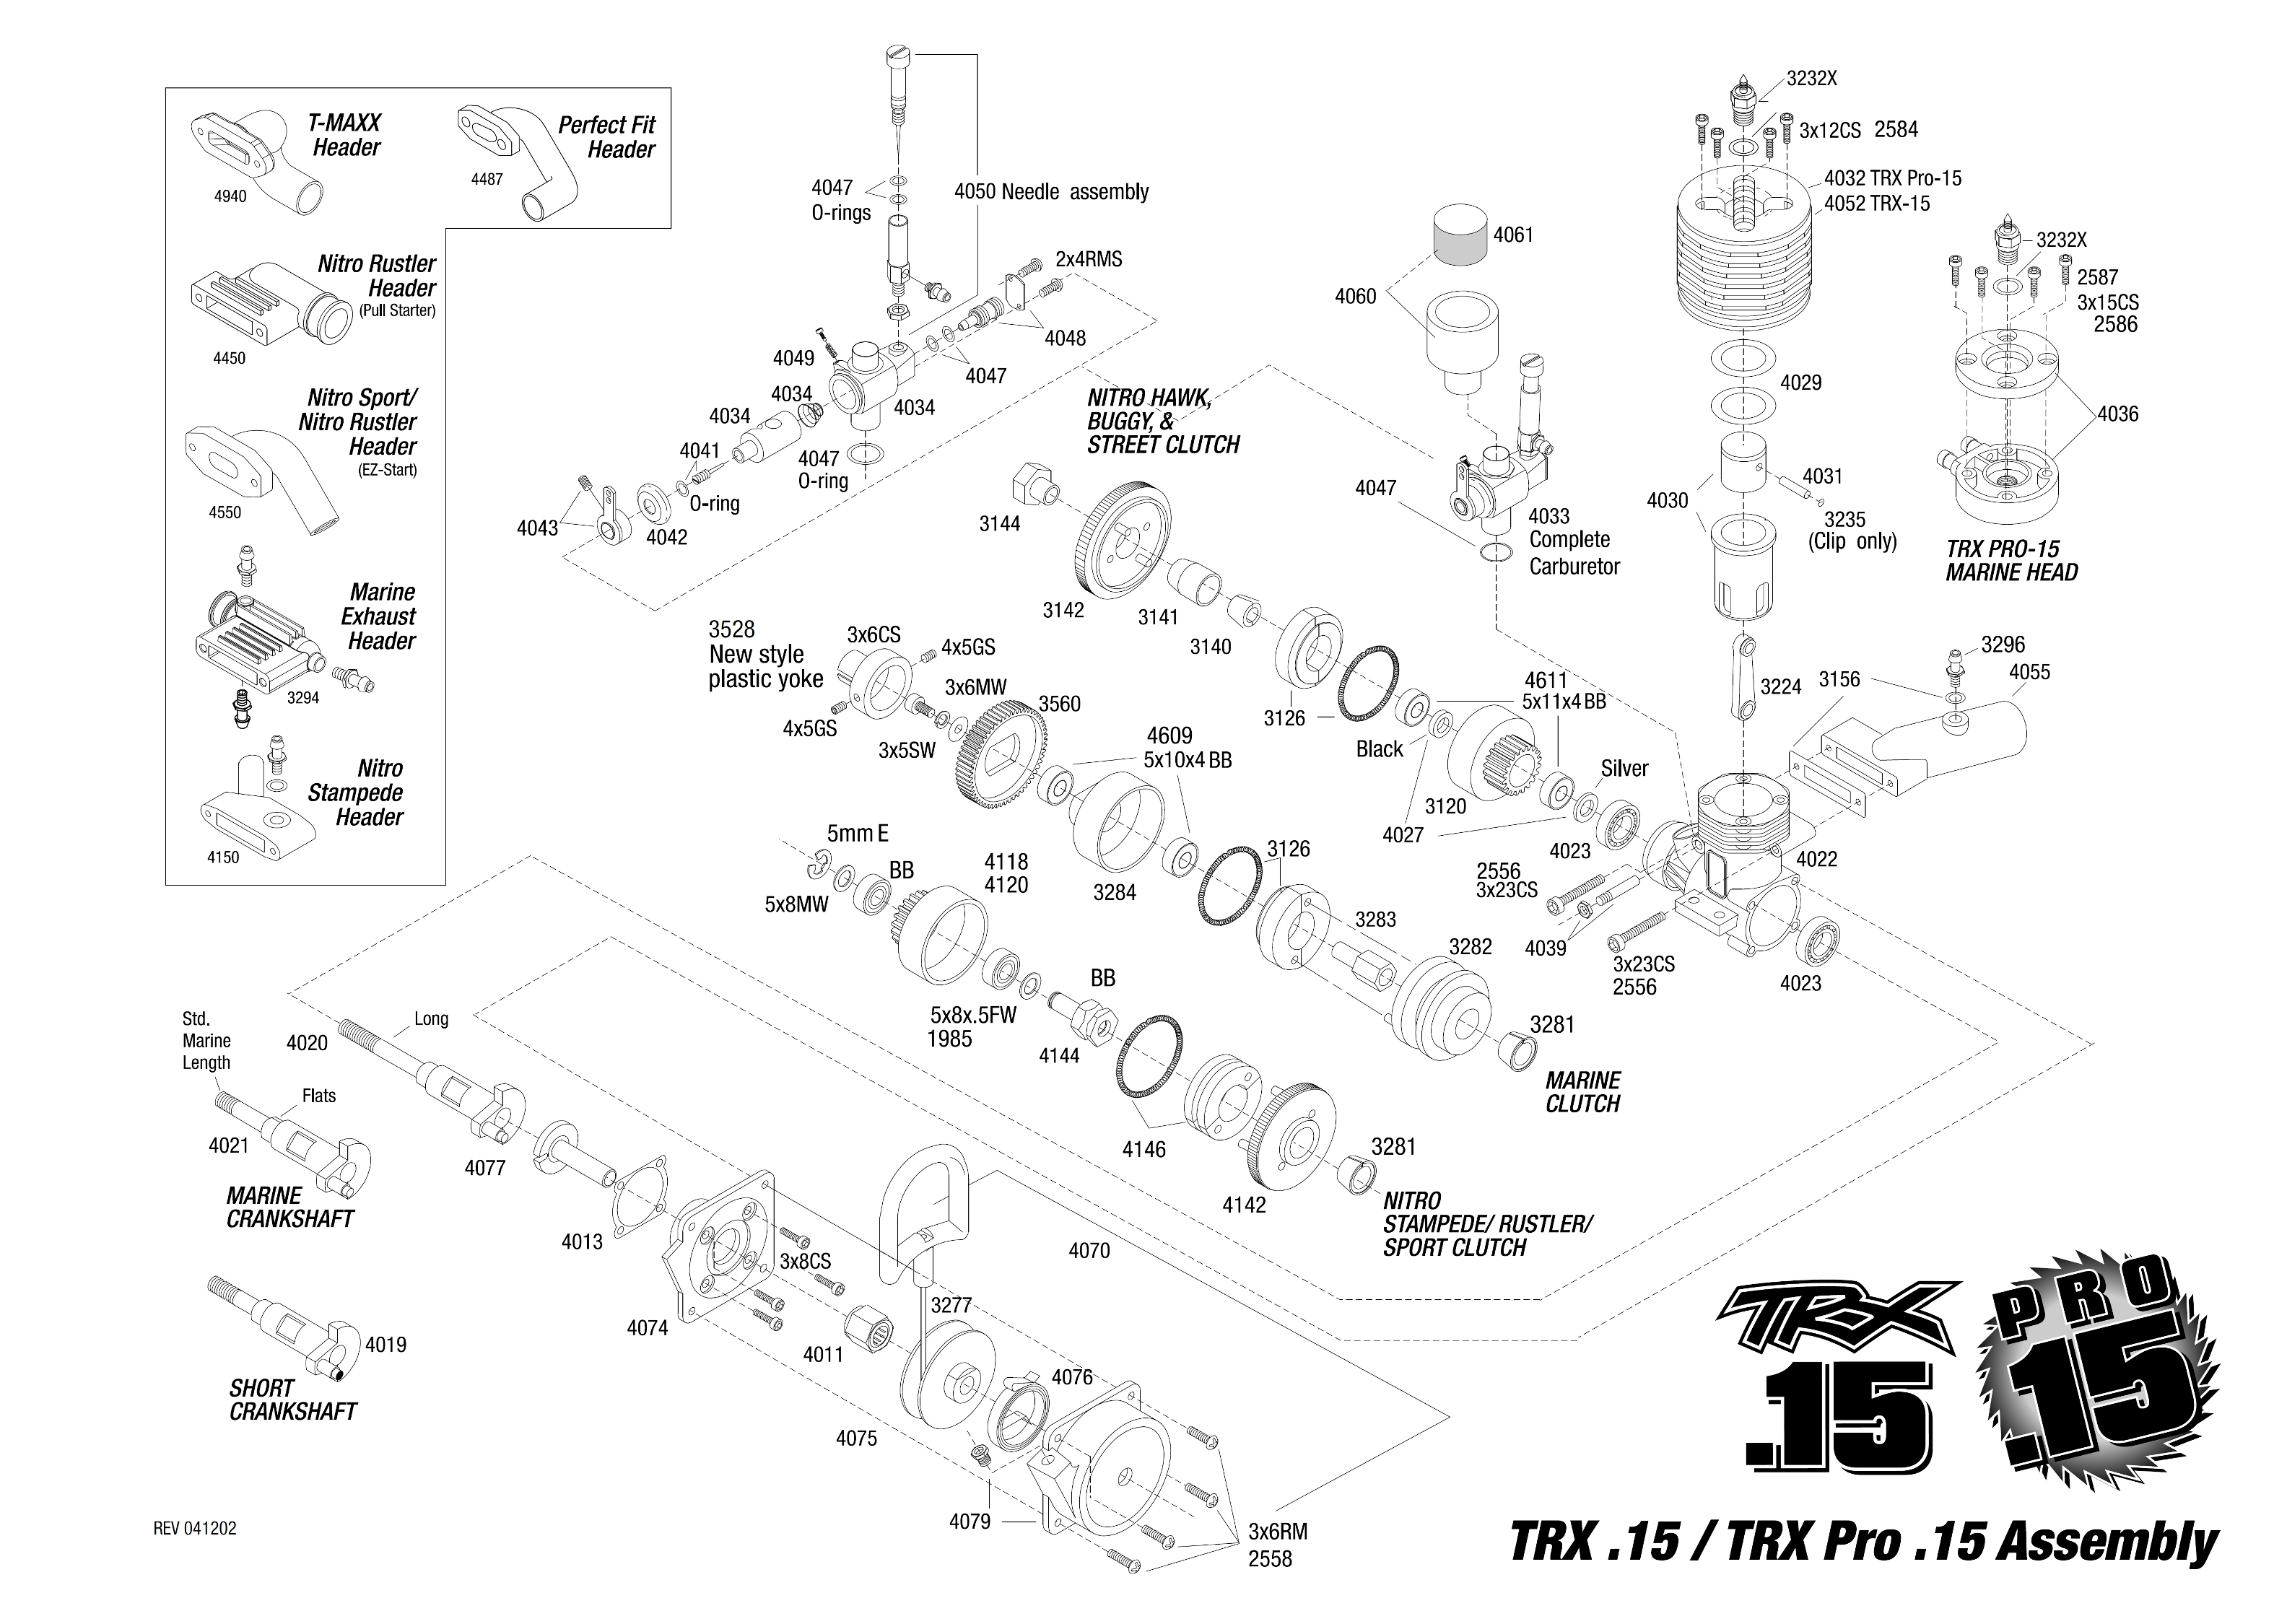 max force engine diagram t max 15 engine diagram exploded view: traxxas motor trx .15 pro s tahovým ...